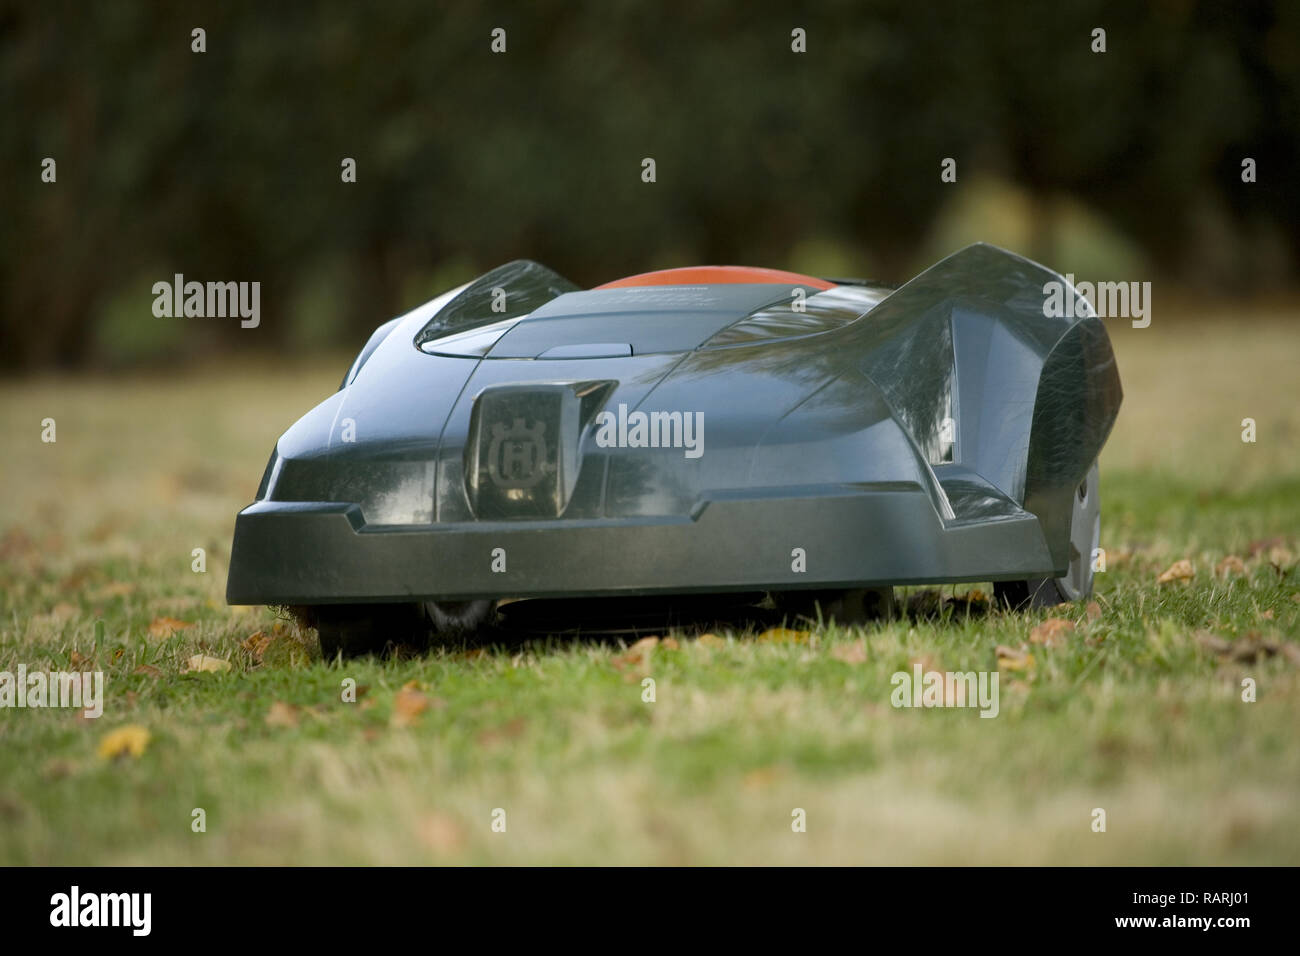 Automatic robot lawn mower cutting grass heading towards camera close up Stock Photo